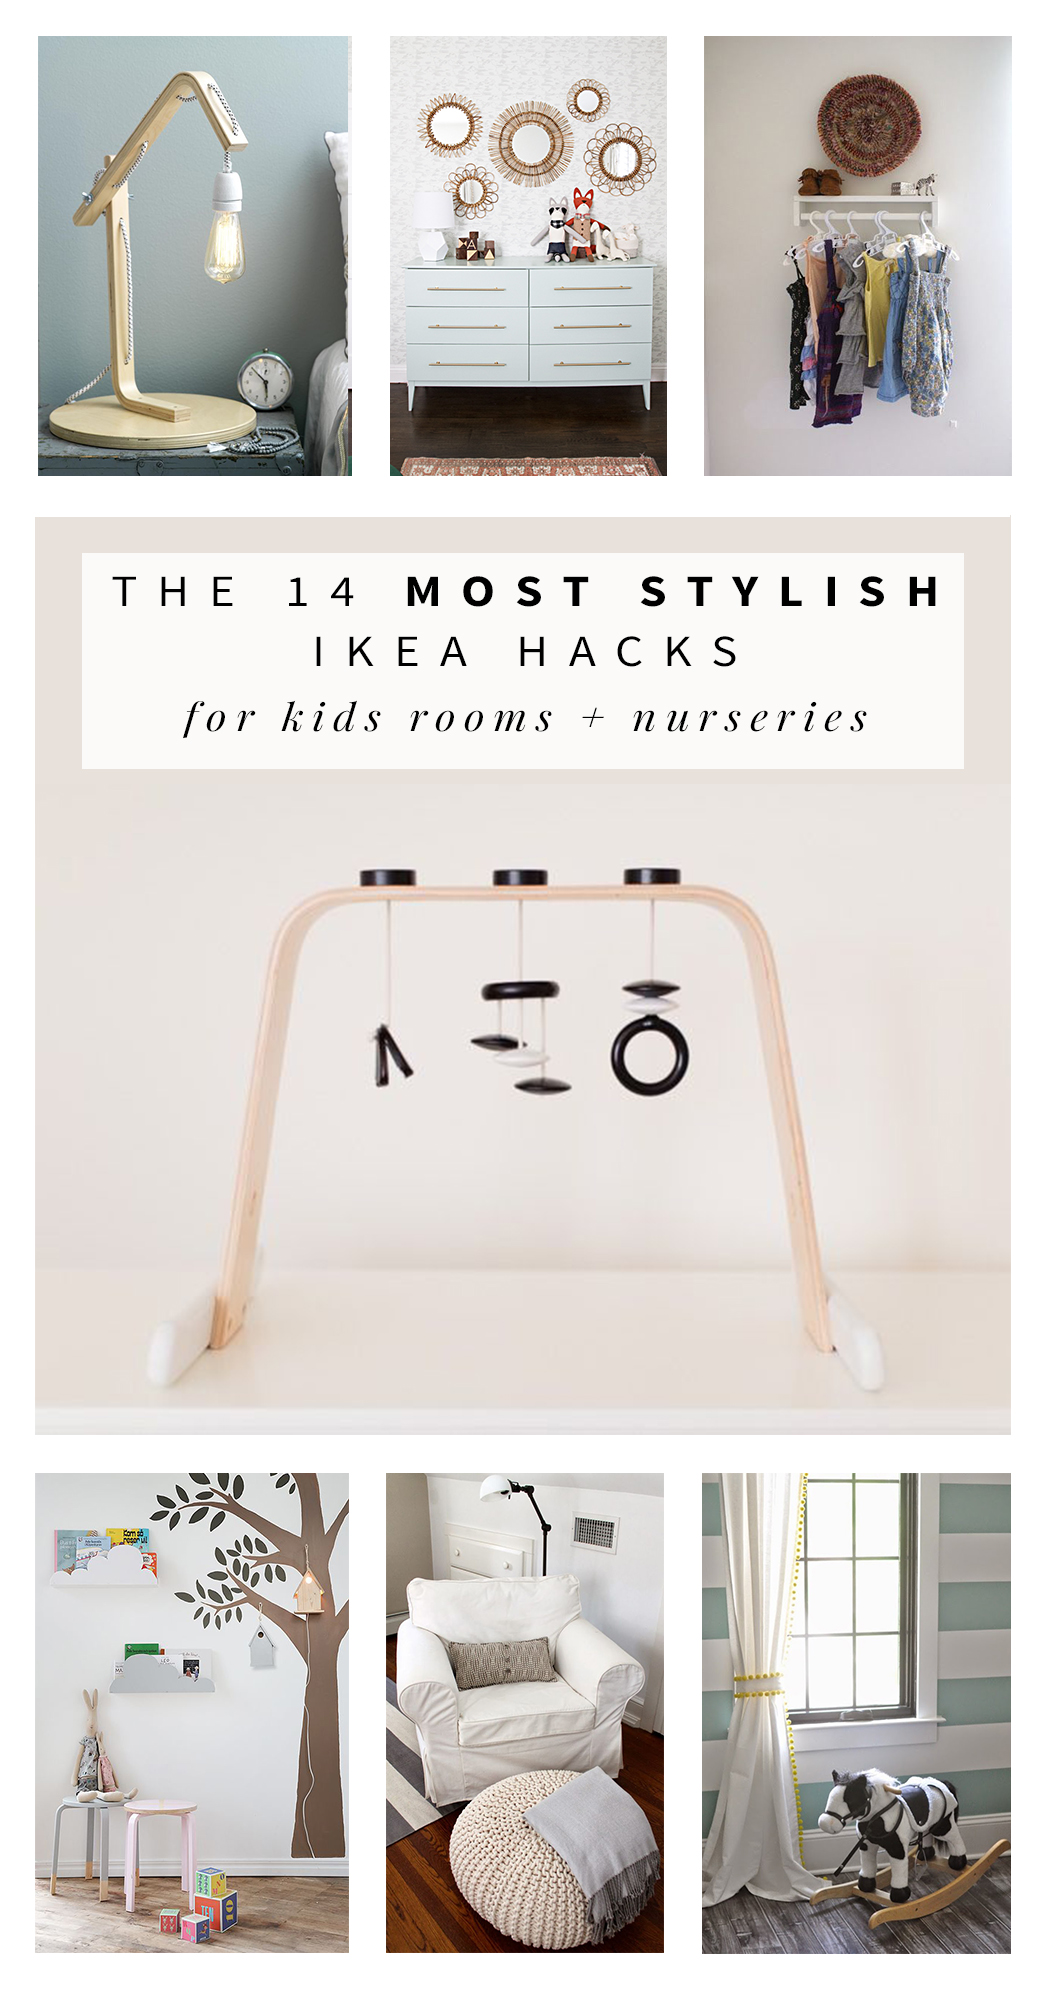 Ikea Hacks Stylish Ikea Hacks For Kids Rooms And Nurseries